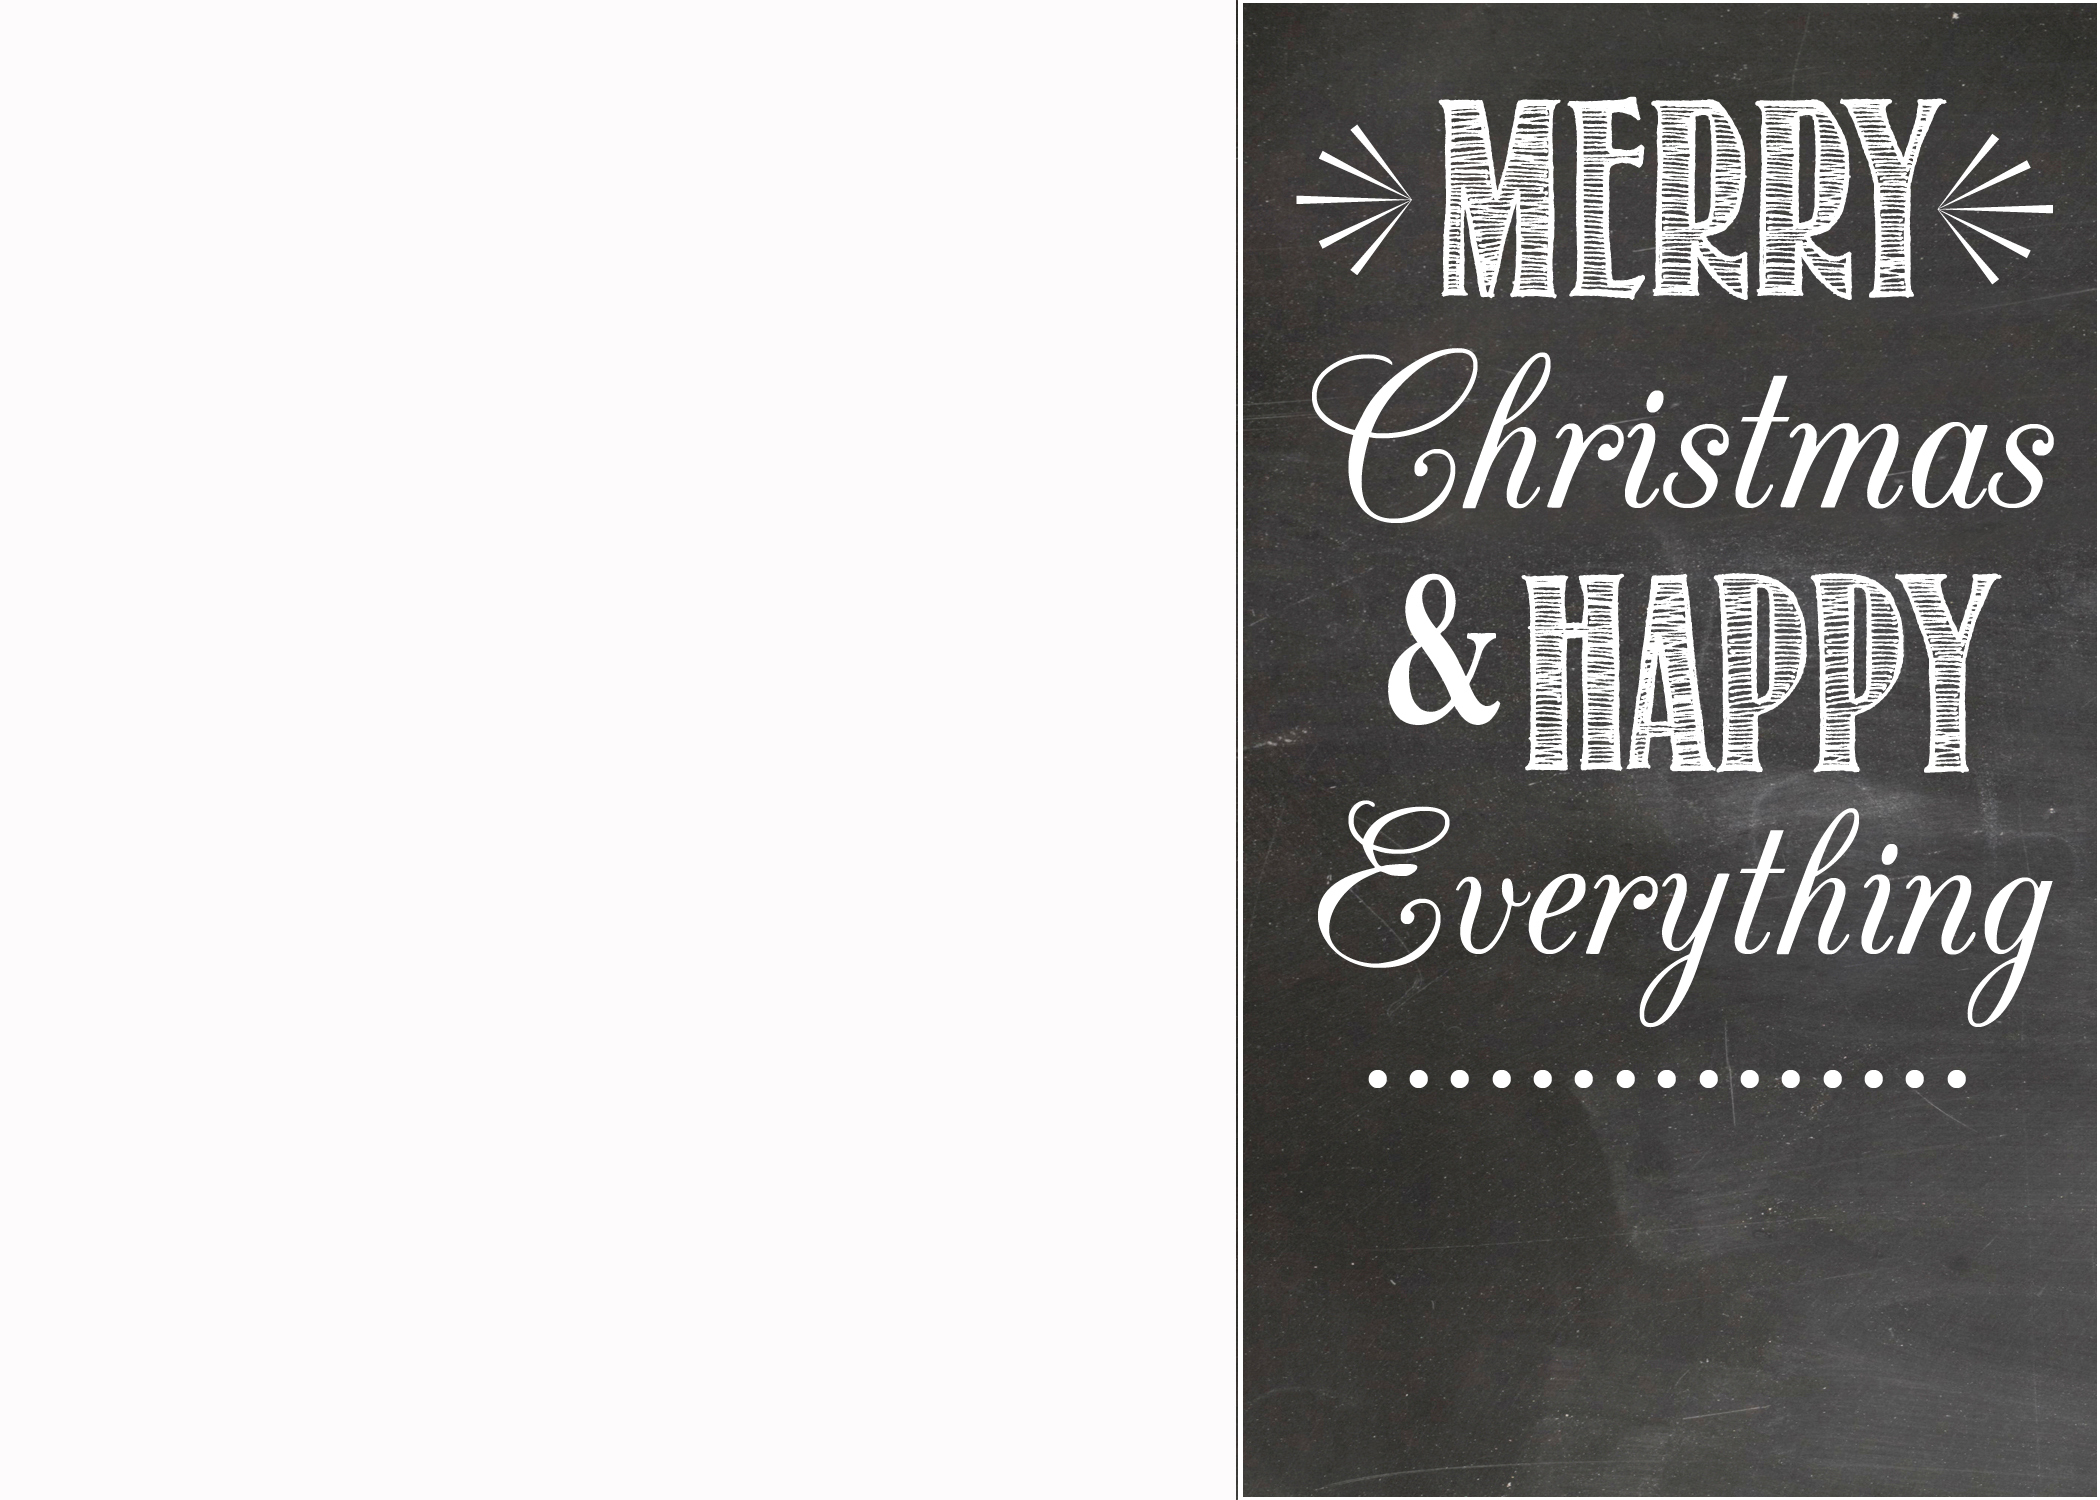 Free Christmas Card Templates As Template Christmas Card Templates - Free Online Printable Christmas Cards